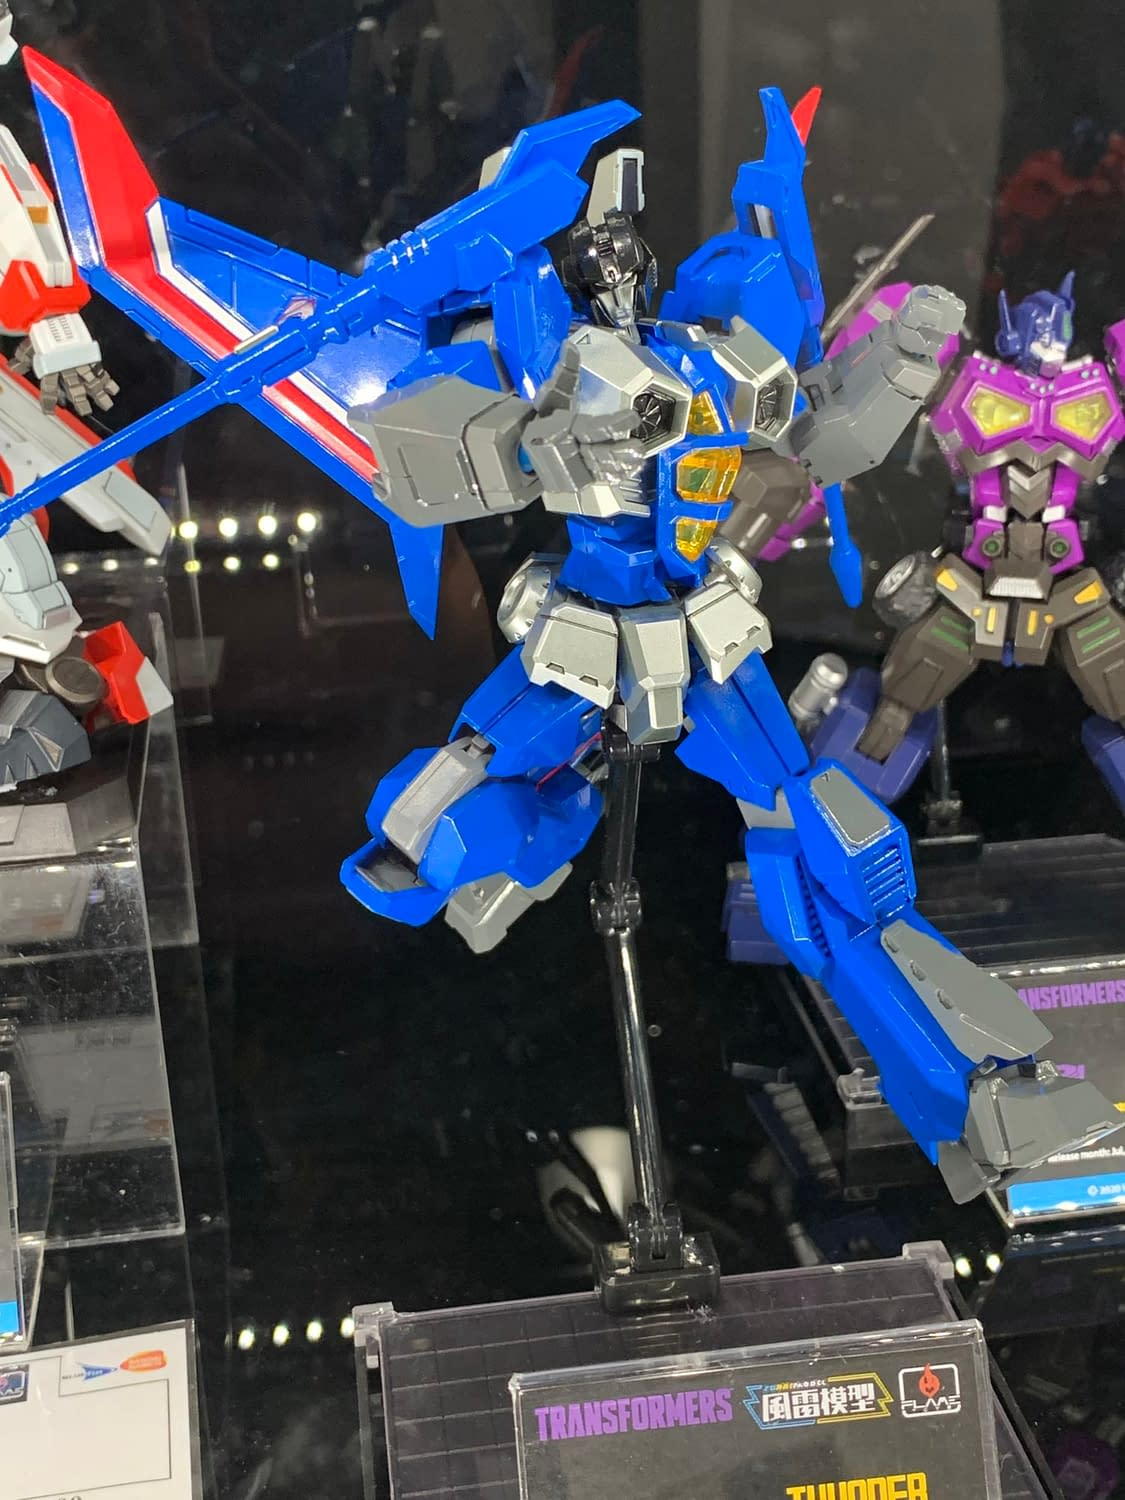 New York Toy Fair: 26 Photos from Flame Toys Booth